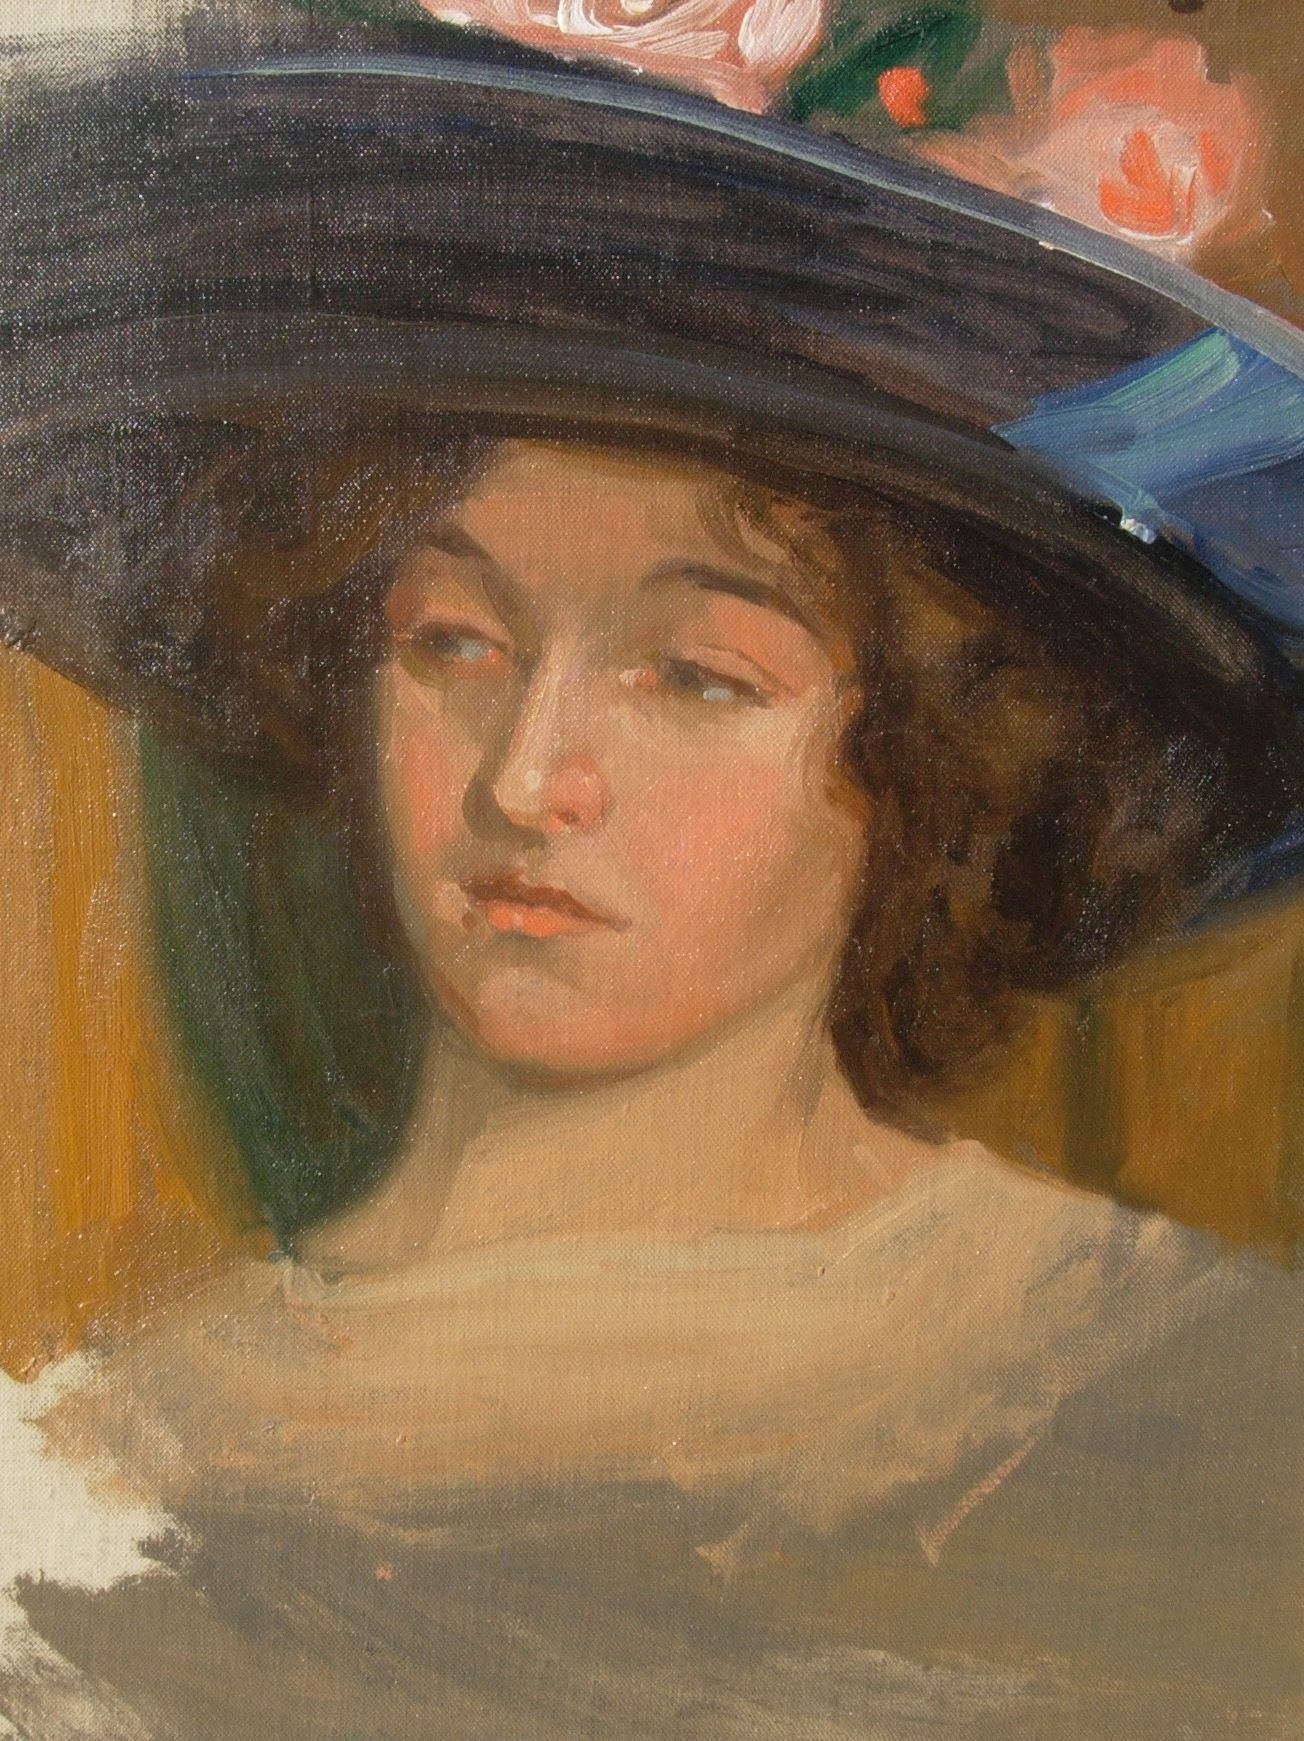 griffith-younggirlhat-cropped